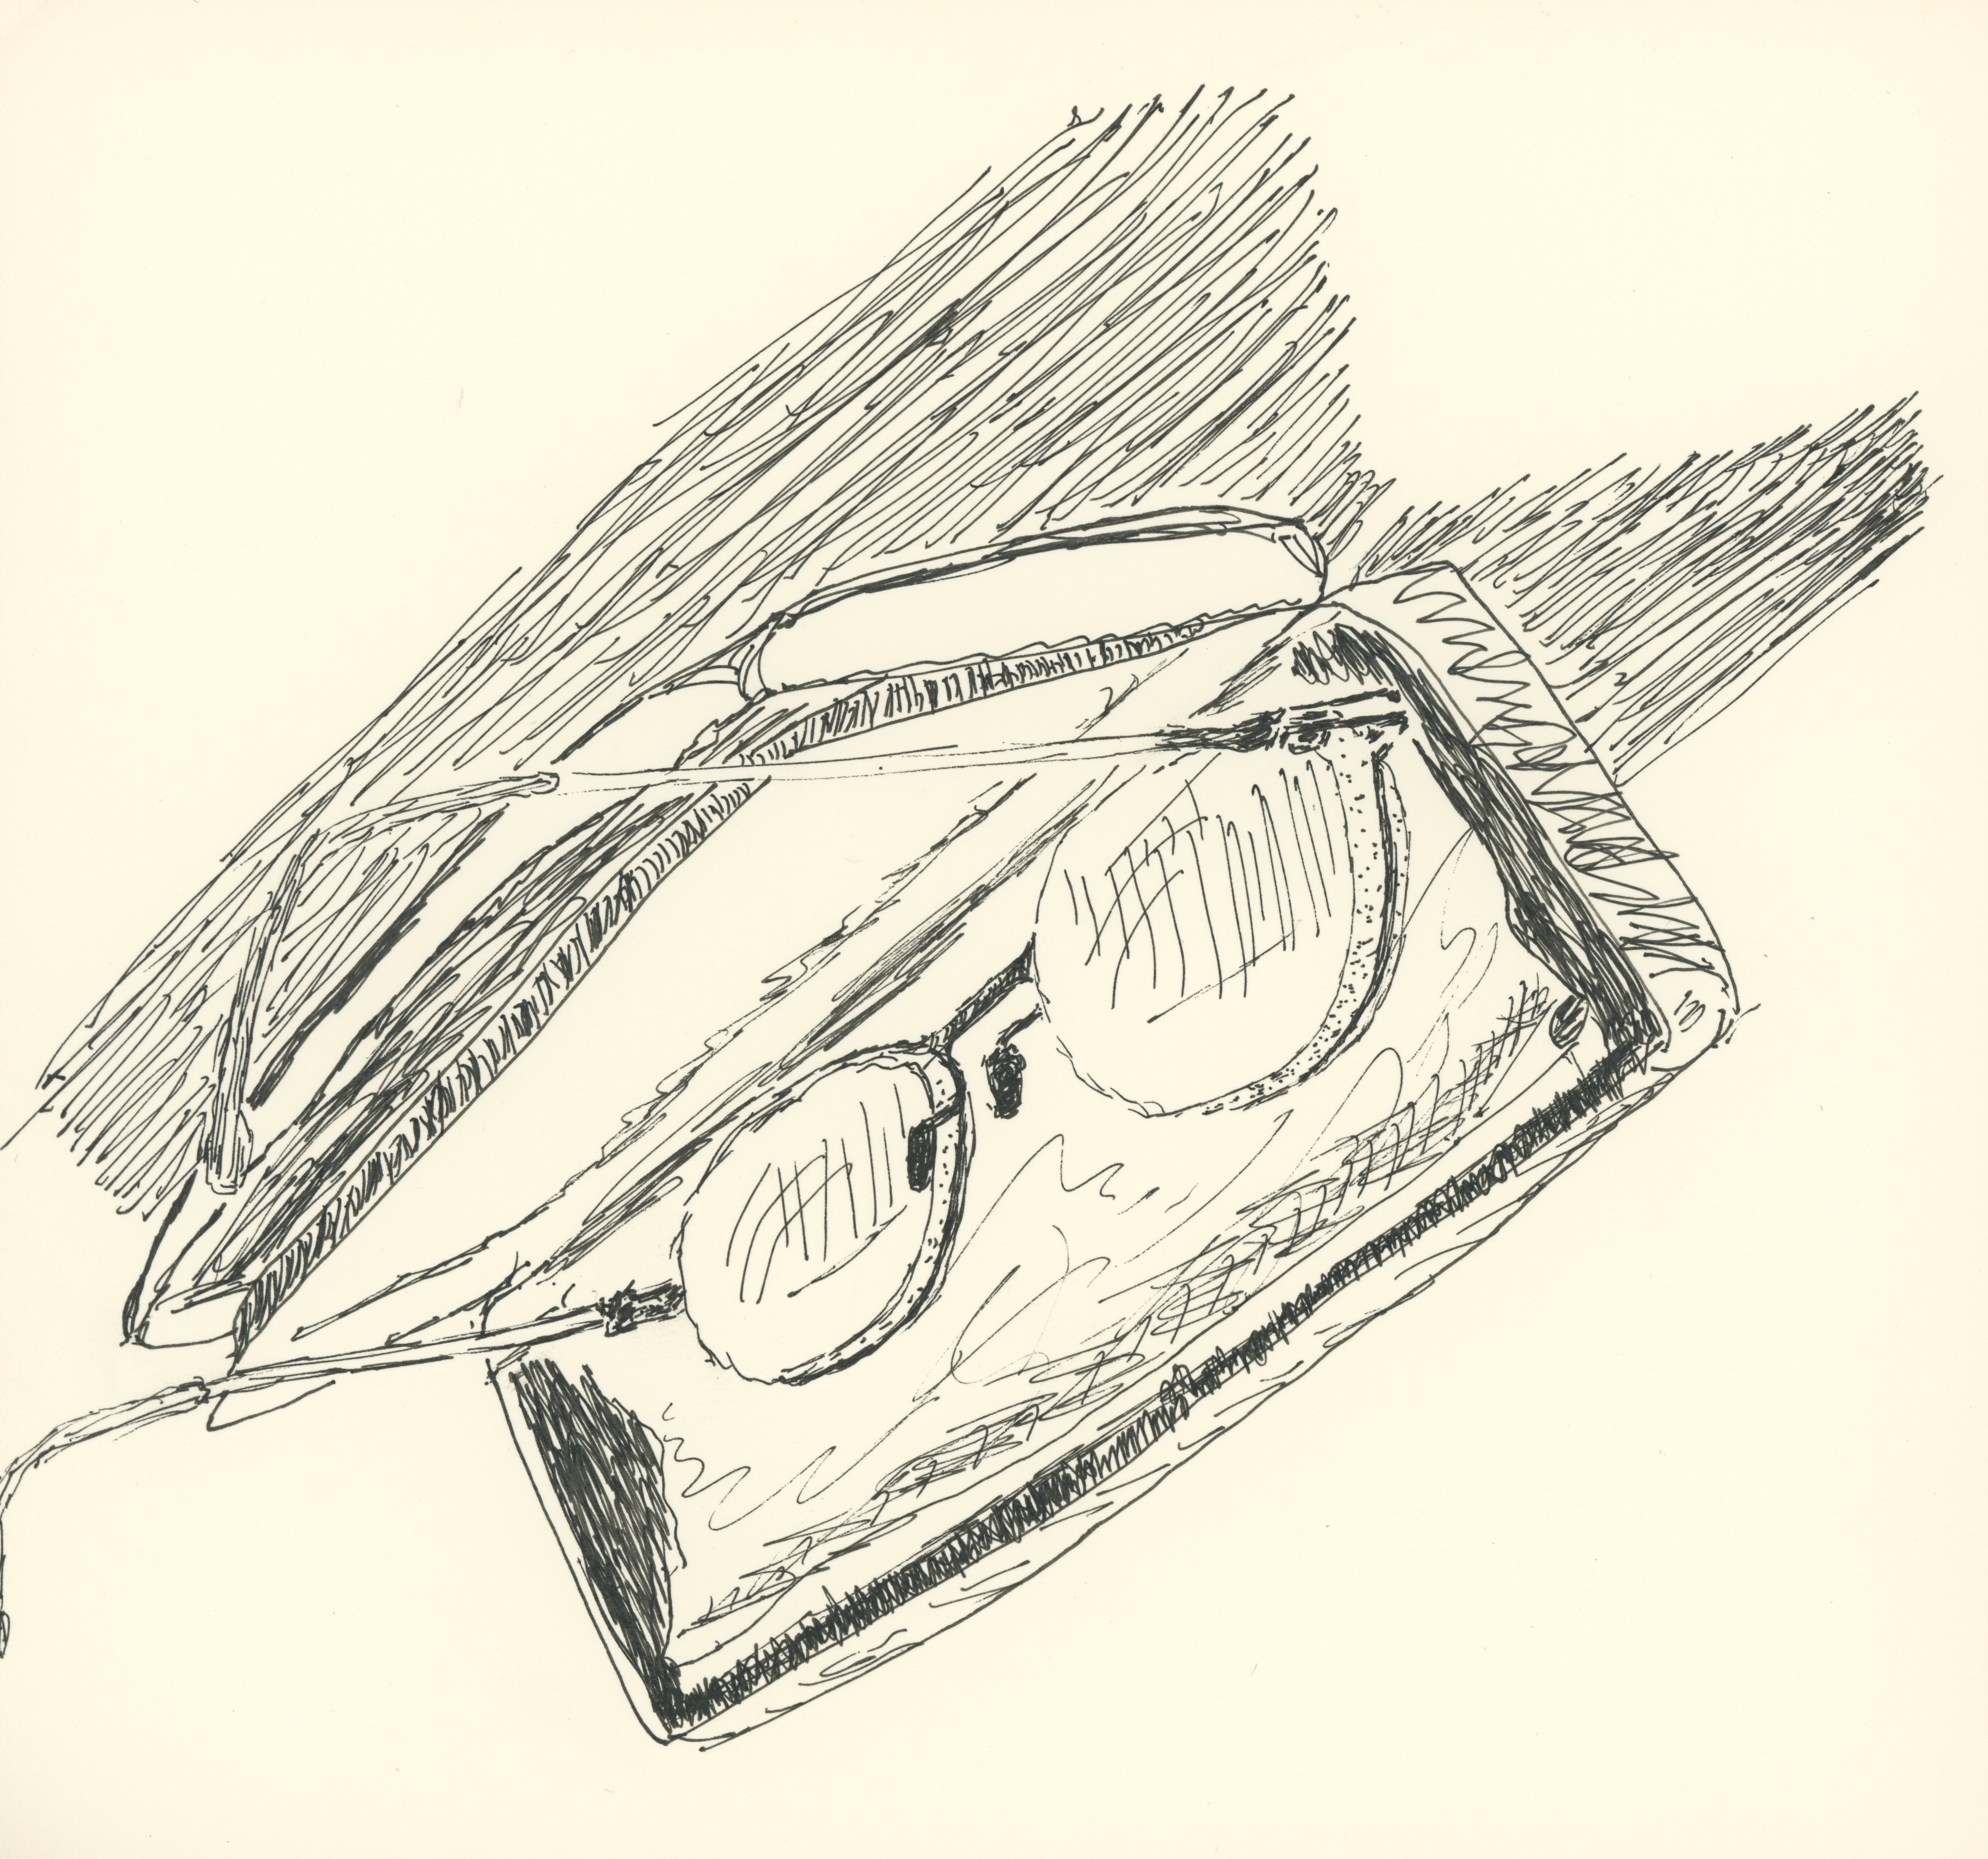 Glasses, drawing by Caleb Crain, 10 October 2015